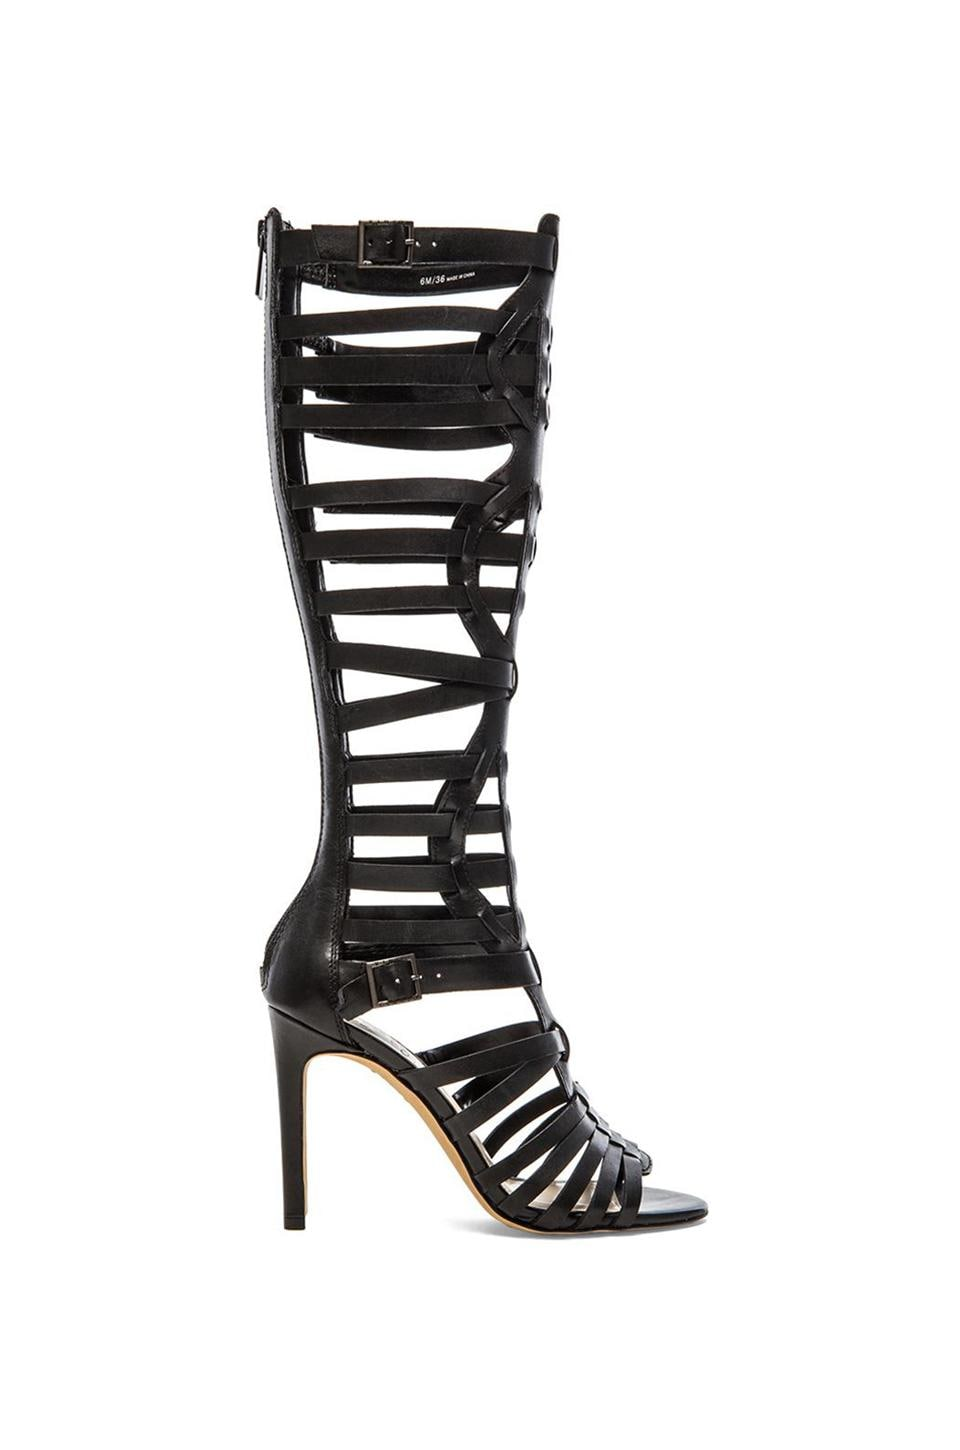 Vince Camuto Kase Smooth Calf Leather Heel in Black